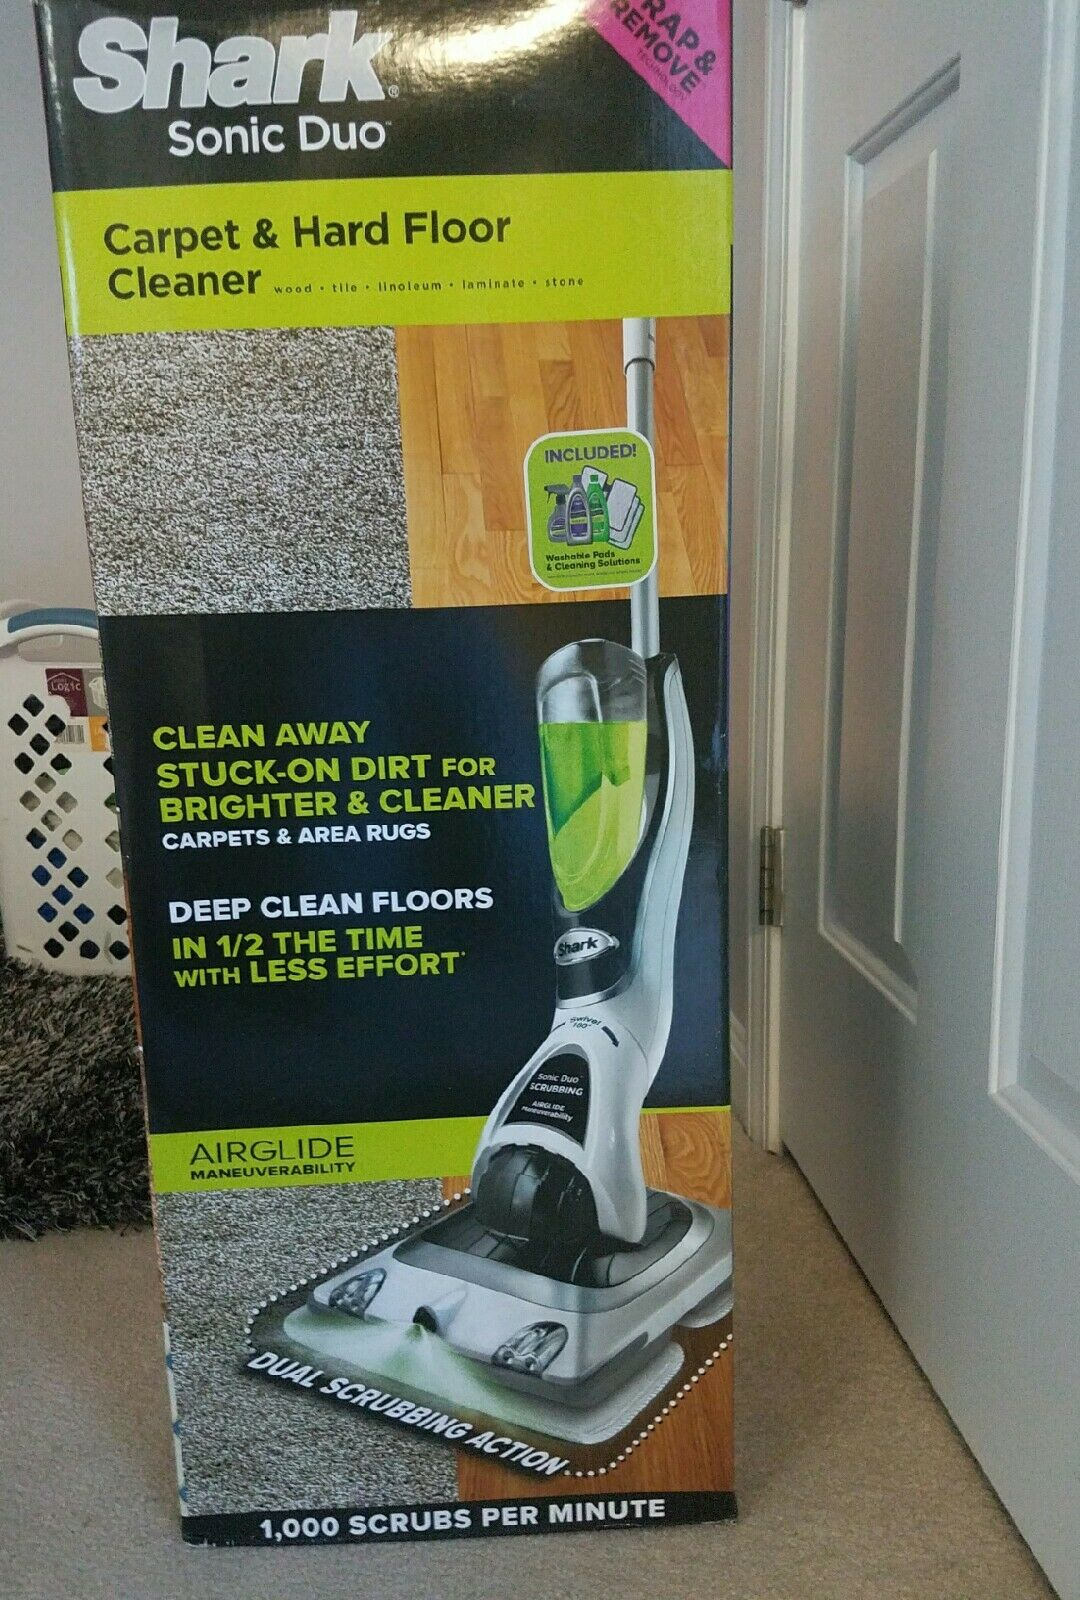 Shark Sonic Duo Carpet And Hard Floor Cleaner 1 Of 3only 2 Available